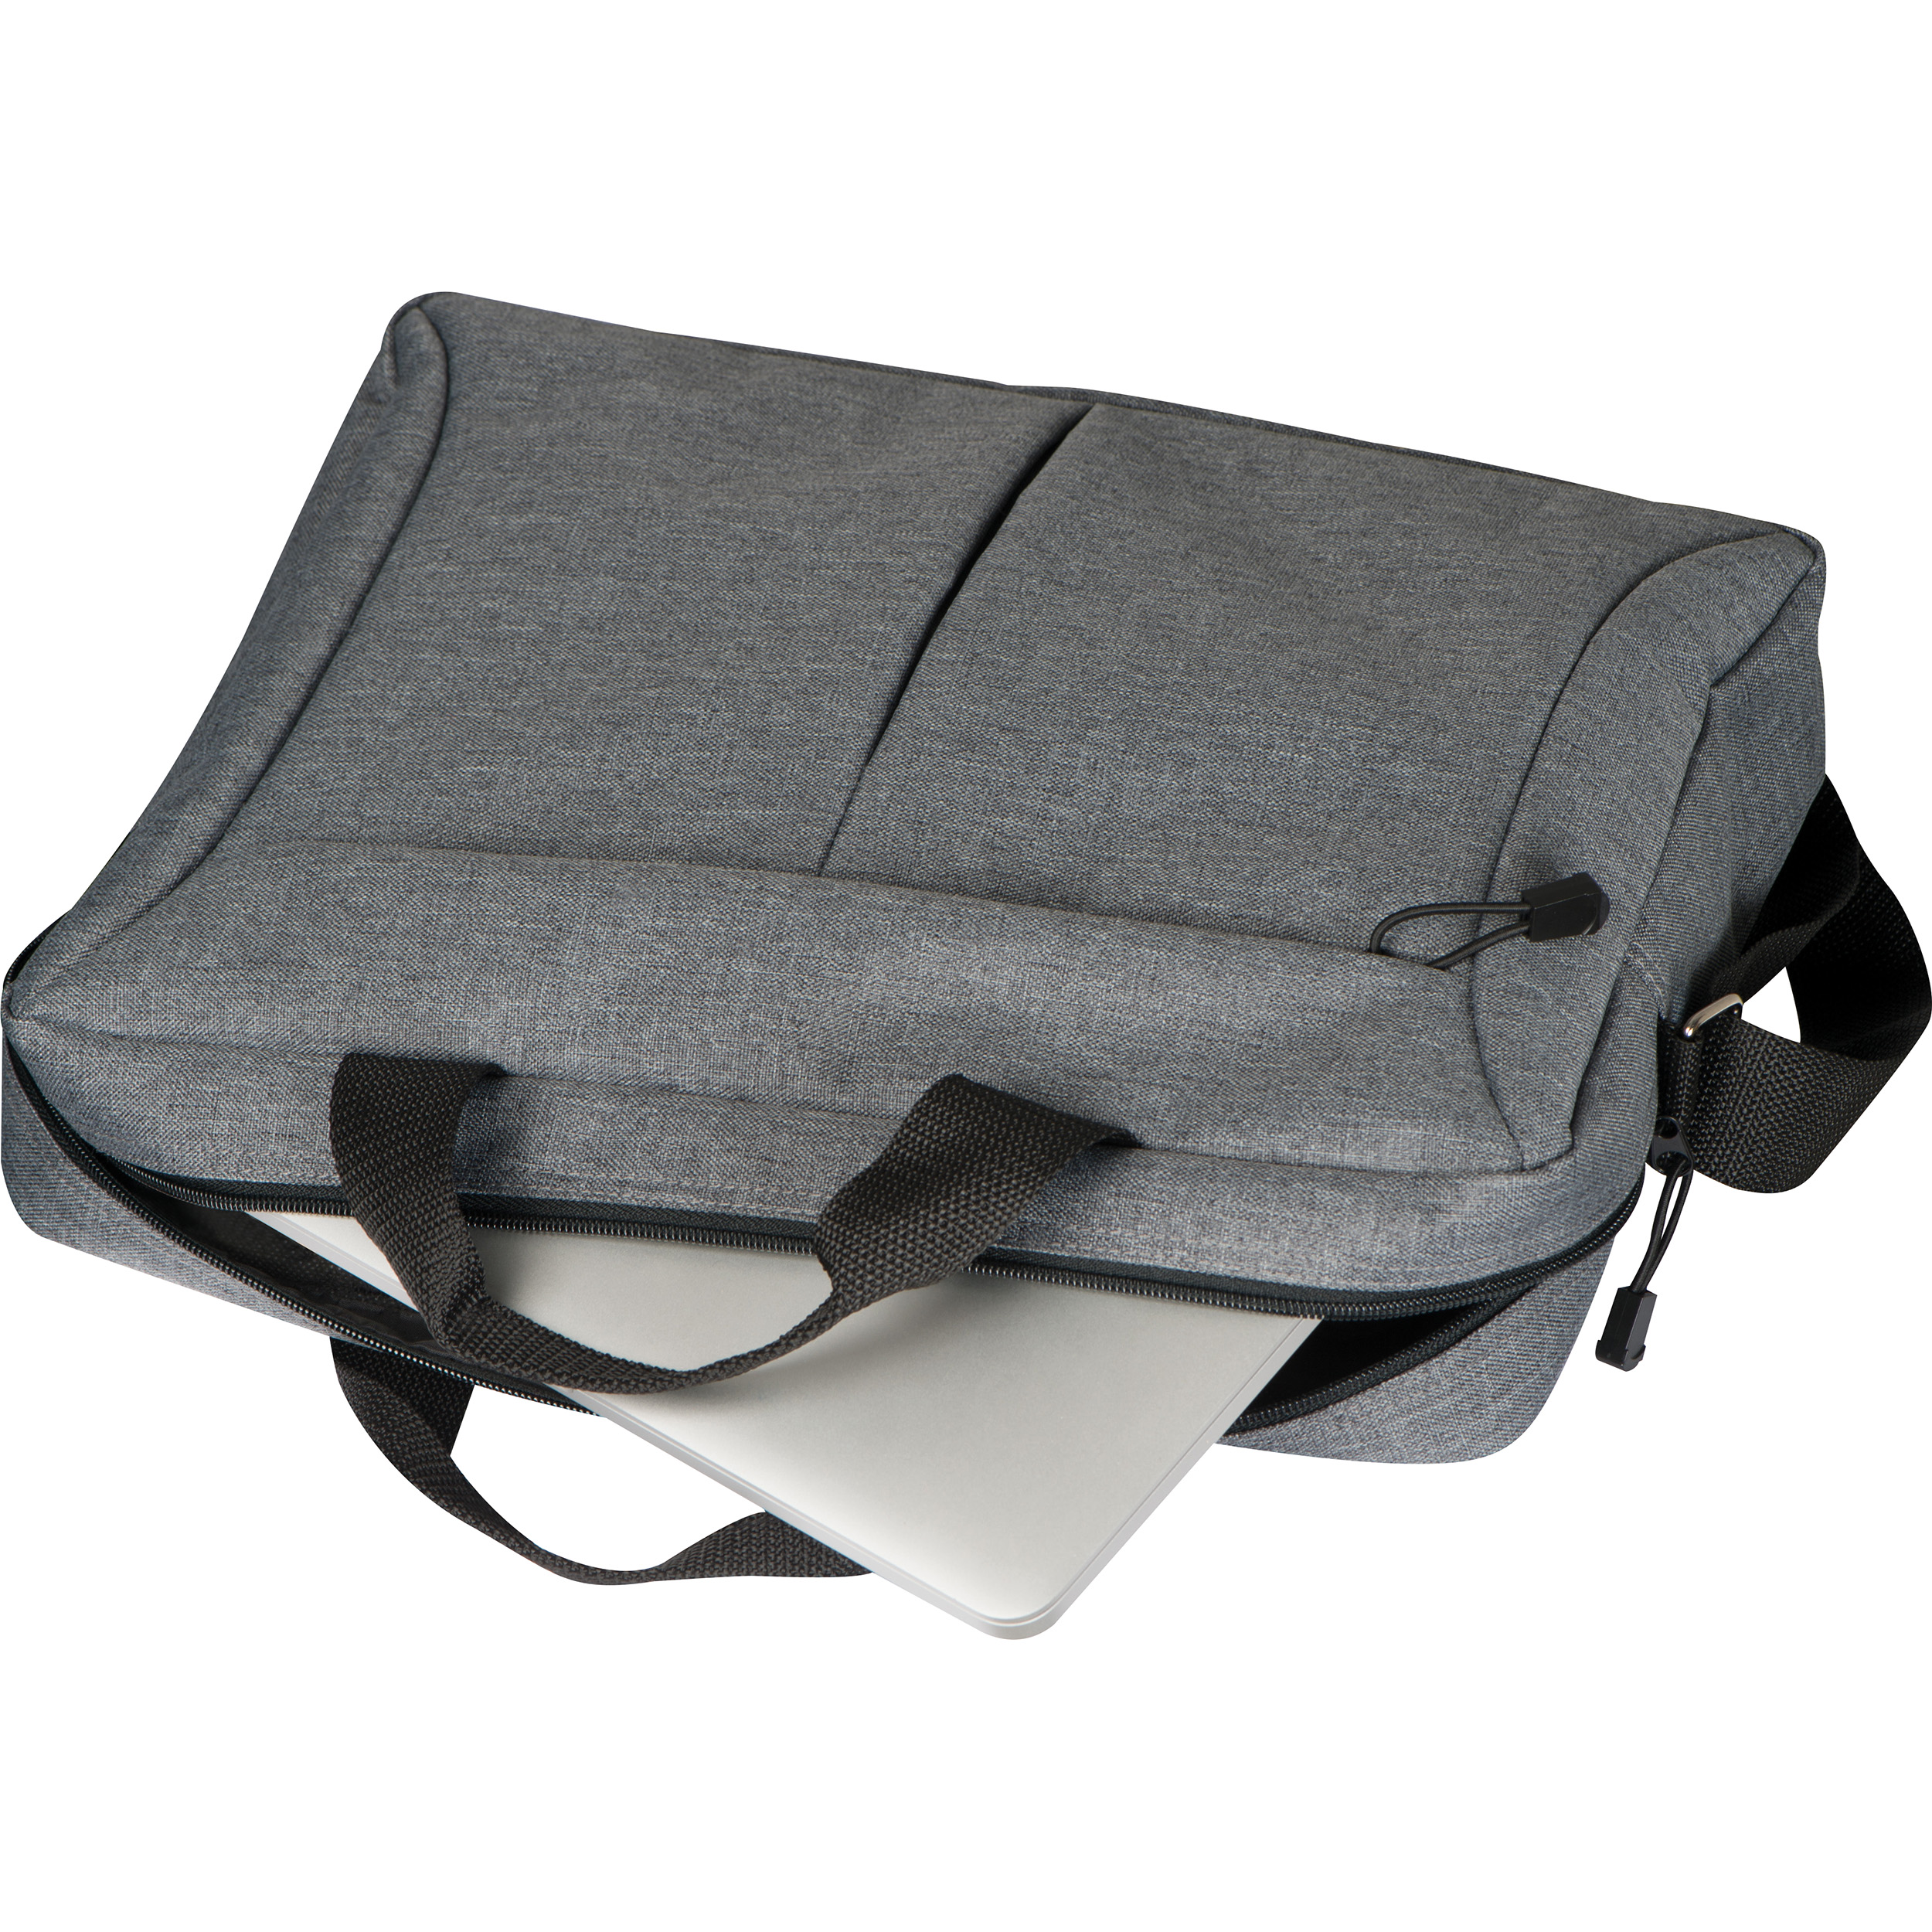 Cartable pour laptop